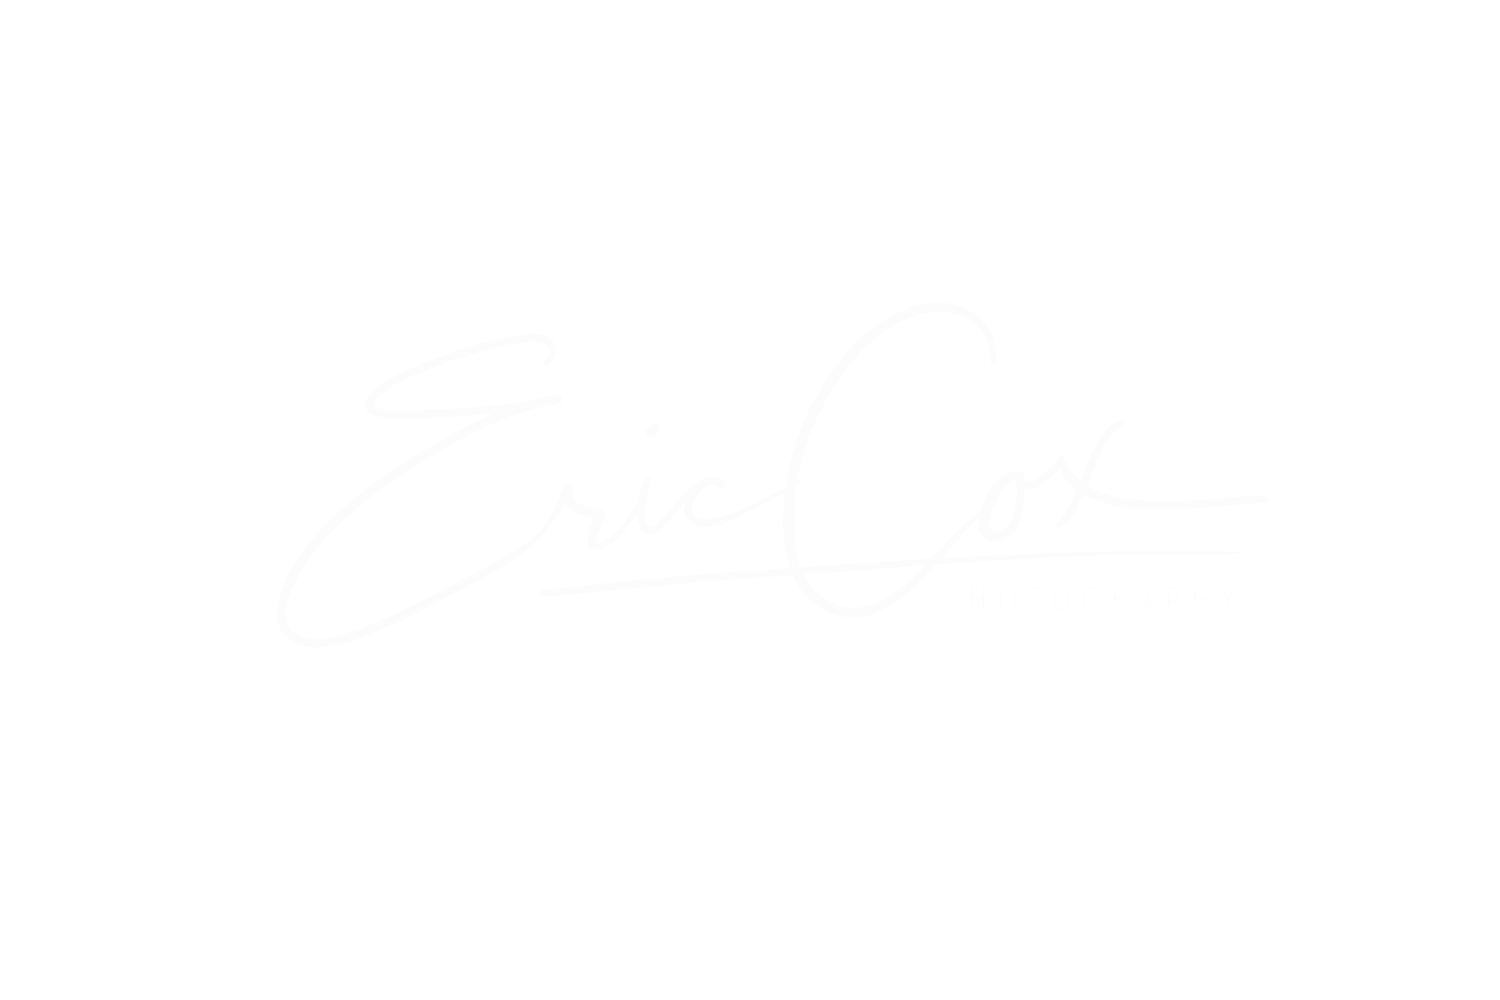 Fayetteville, NC Wedding Photographers Eric Cox